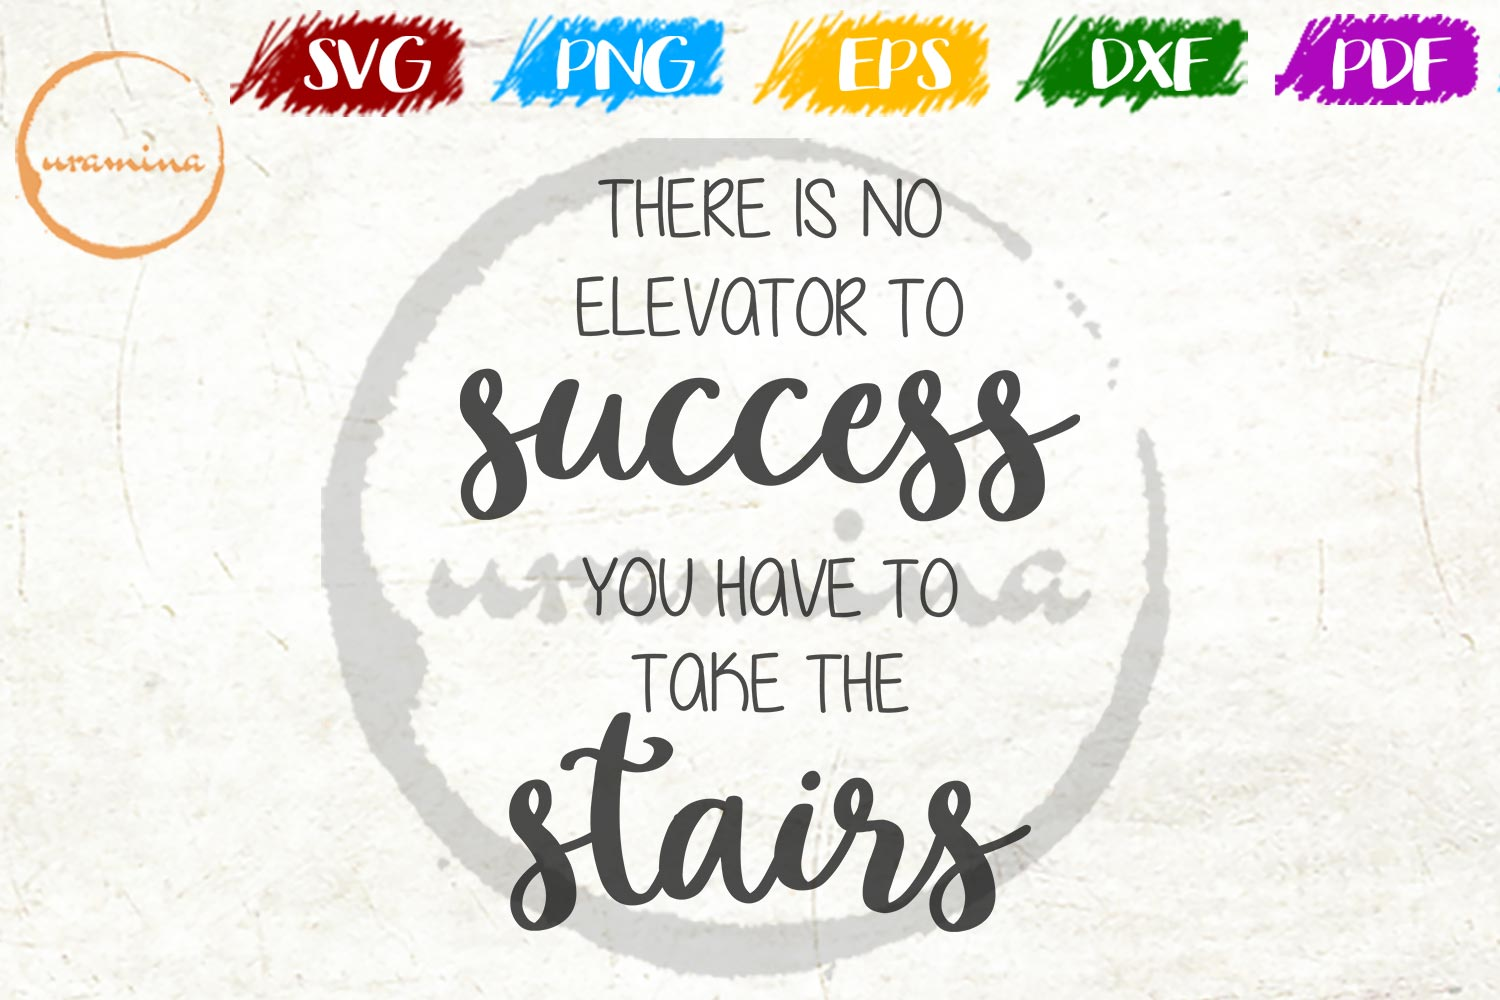 Download Free There Is No Elevator To Success You Have Graphic By Uramina for Cricut Explore, Silhouette and other cutting machines.